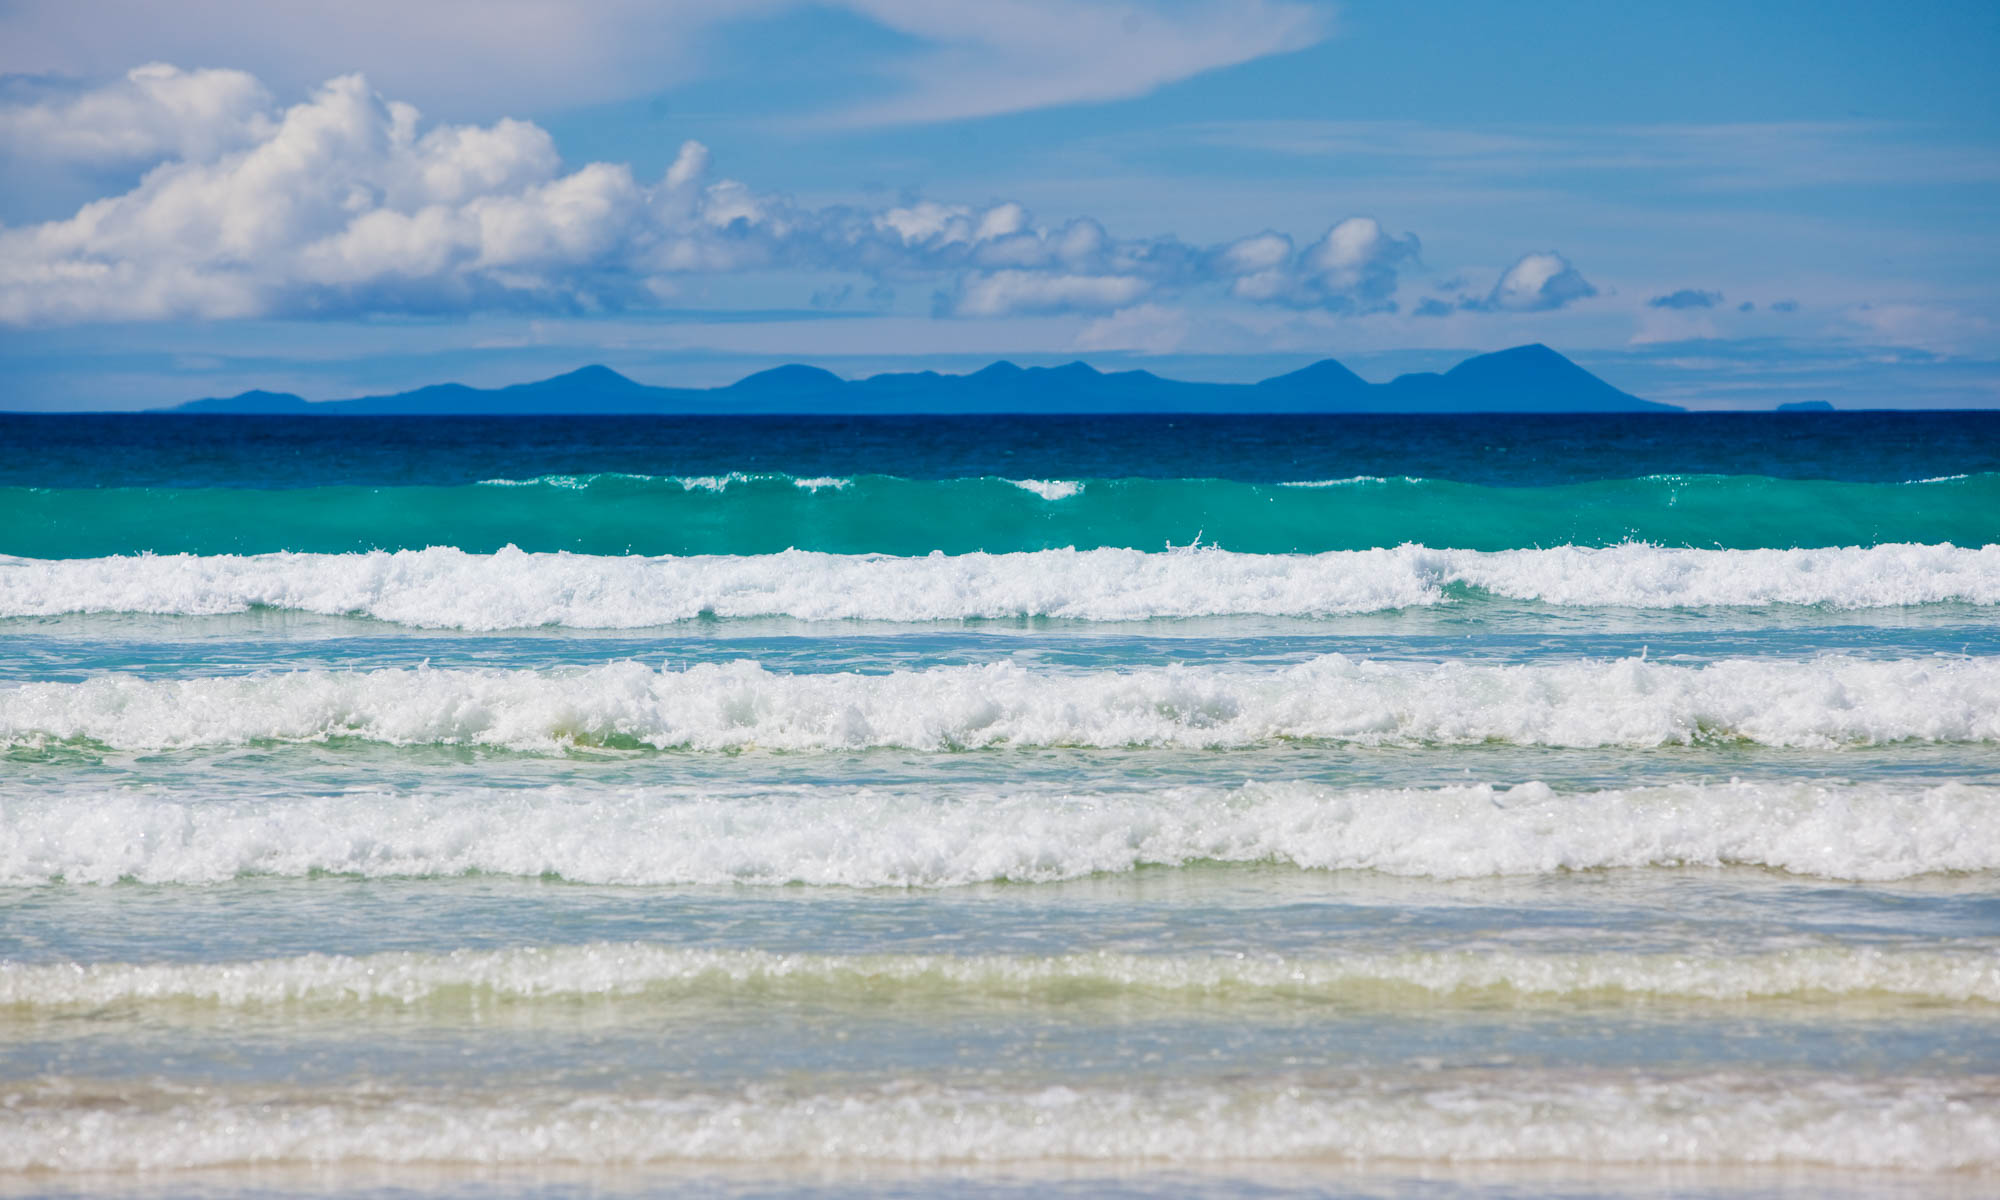 Beautiful waves in various shades of blue rolling into a beach in the Galapagos Islands with Floreana Island in the distance.